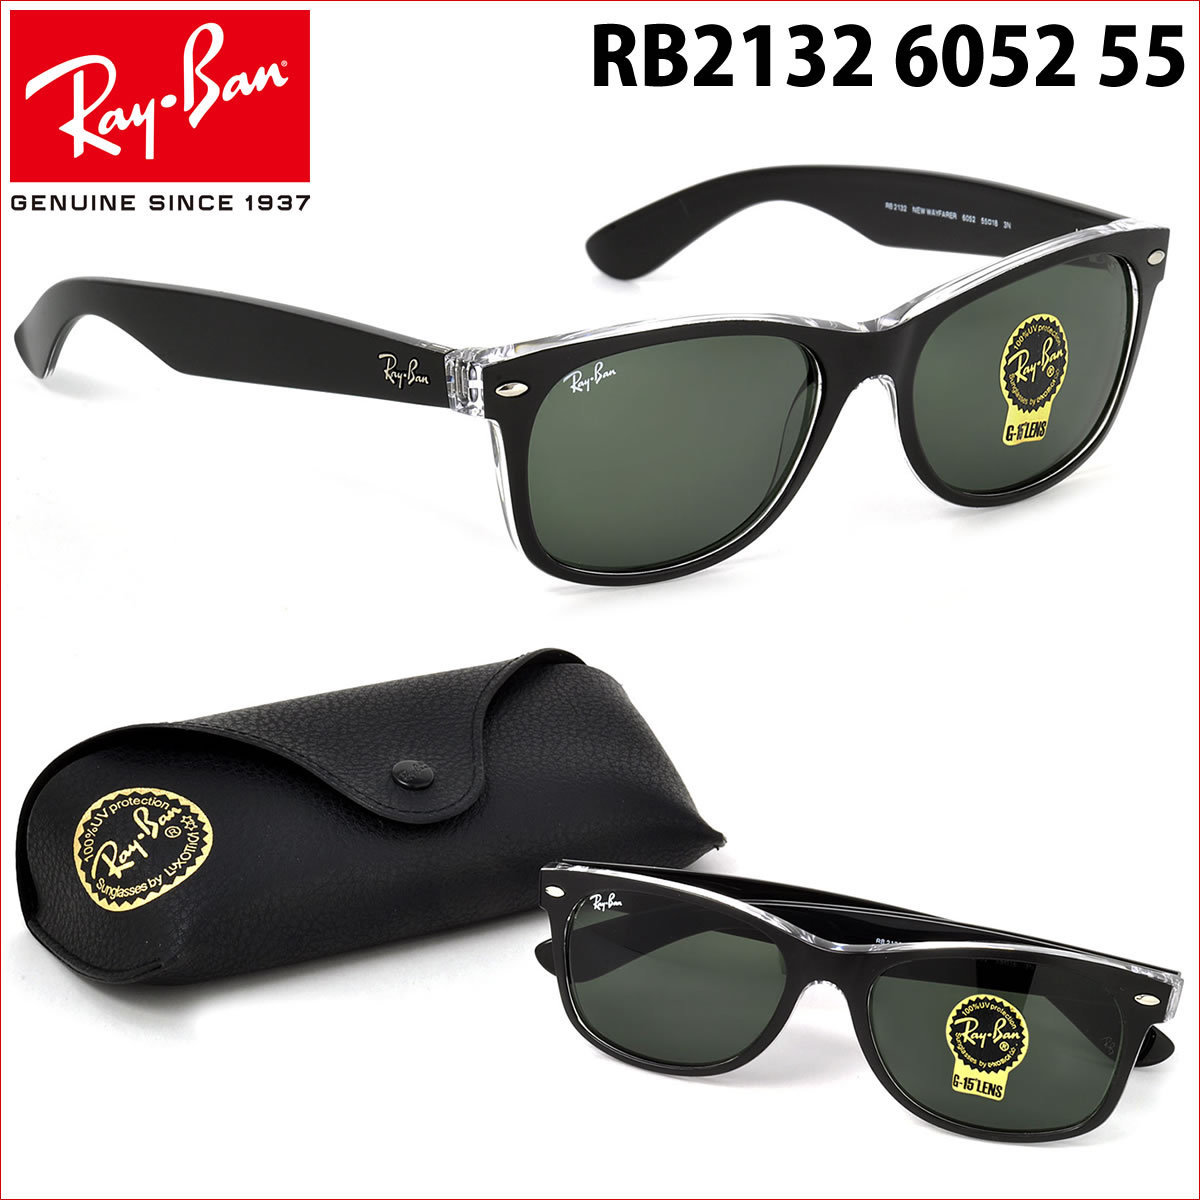 c4409fbb57 Shop Ray-Ban RB2132 New Wayfarer Color Mix Sunglasses Transparent Black   Green Classic 55mm - Black - Free Shipping Today - Overstock - 9922384